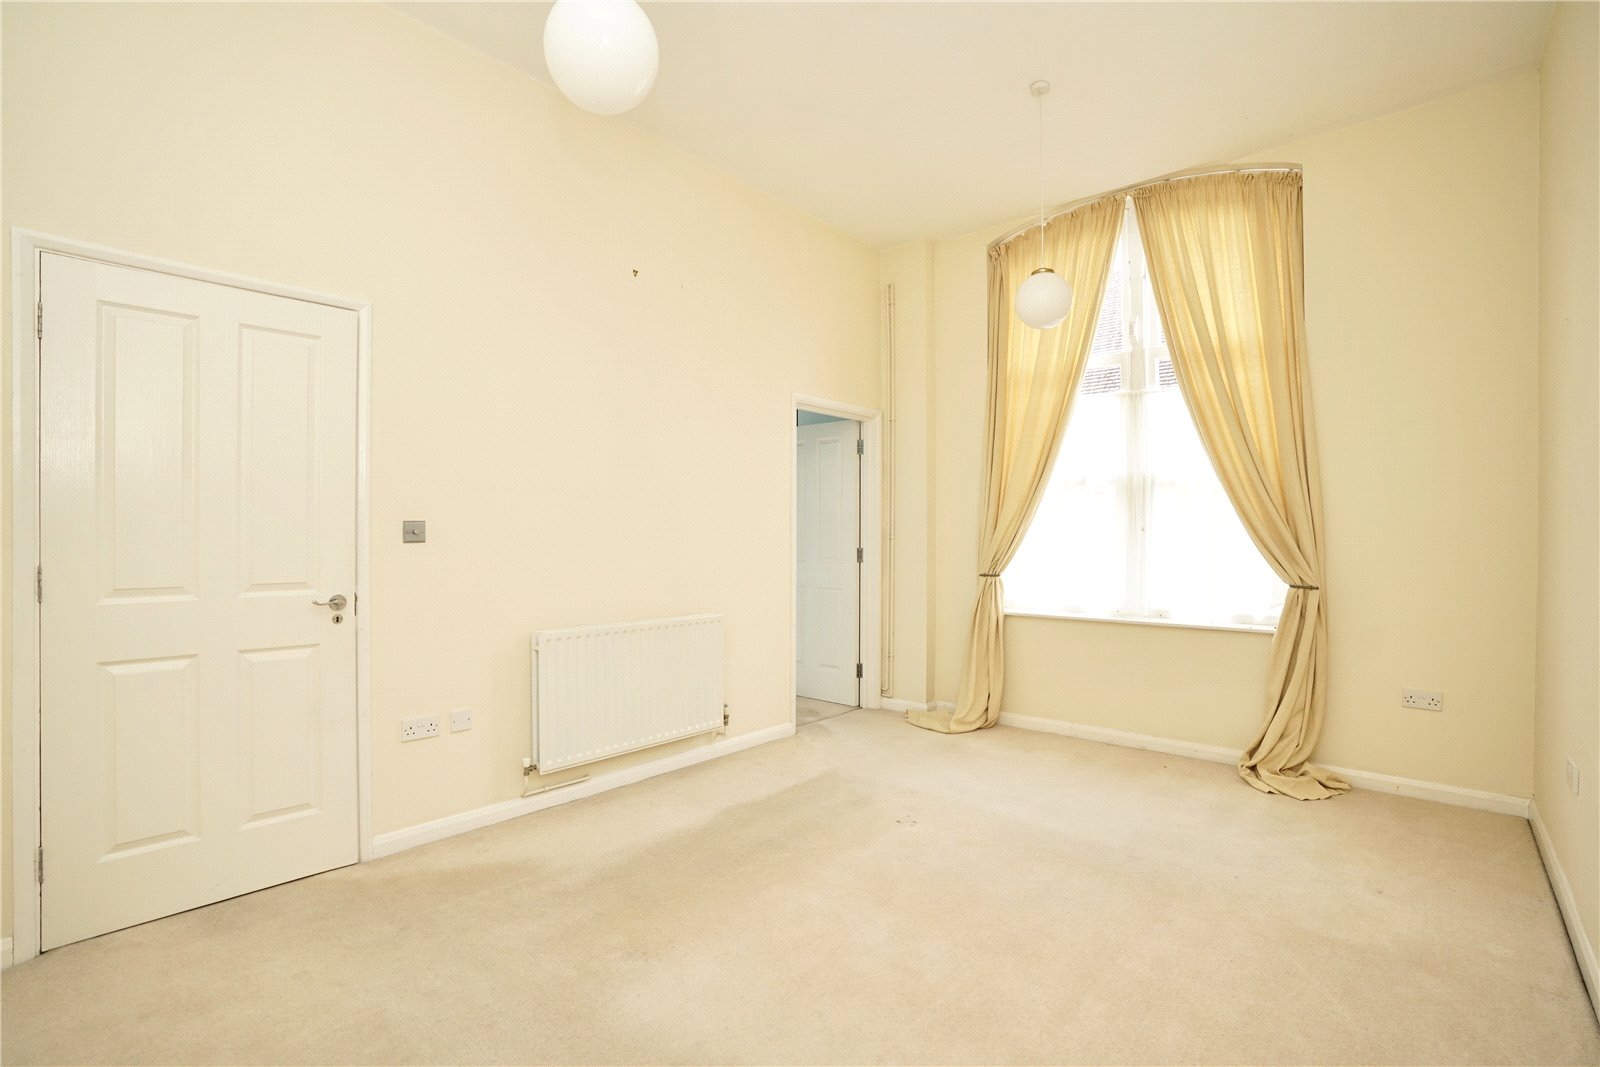 3 bed apartment for sale in Chandlers Wharf, St. Neots 11